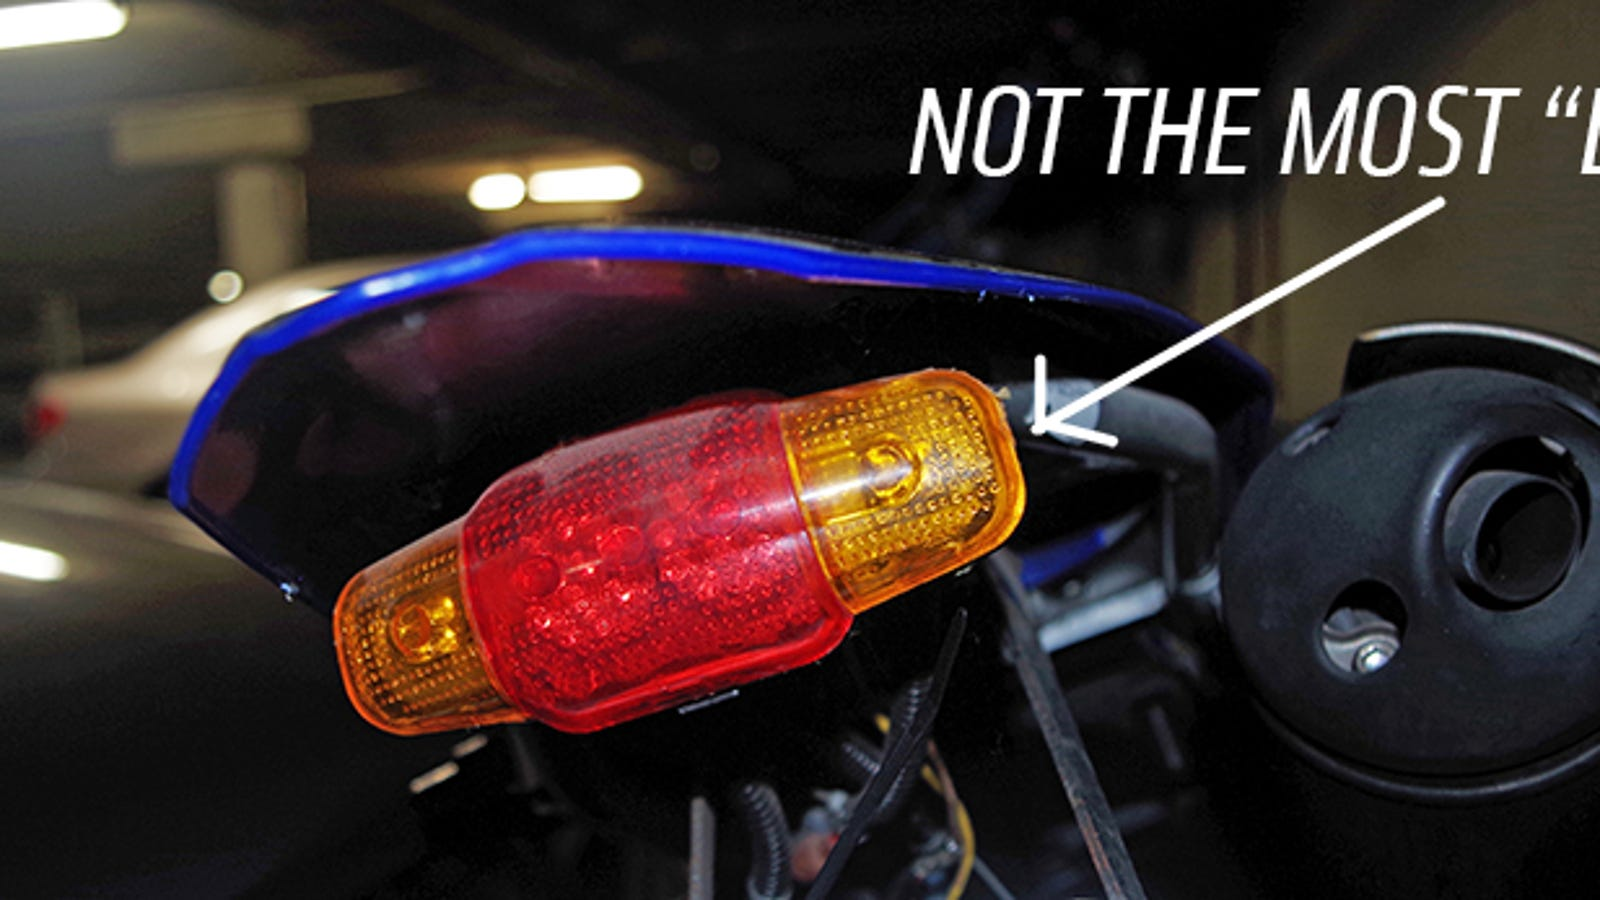 Essential Tips For Doing Your Generally Terrible Custom Motorcycle To Install New Circuits Christmas Lights Root Electric Services Lighting The Right Way